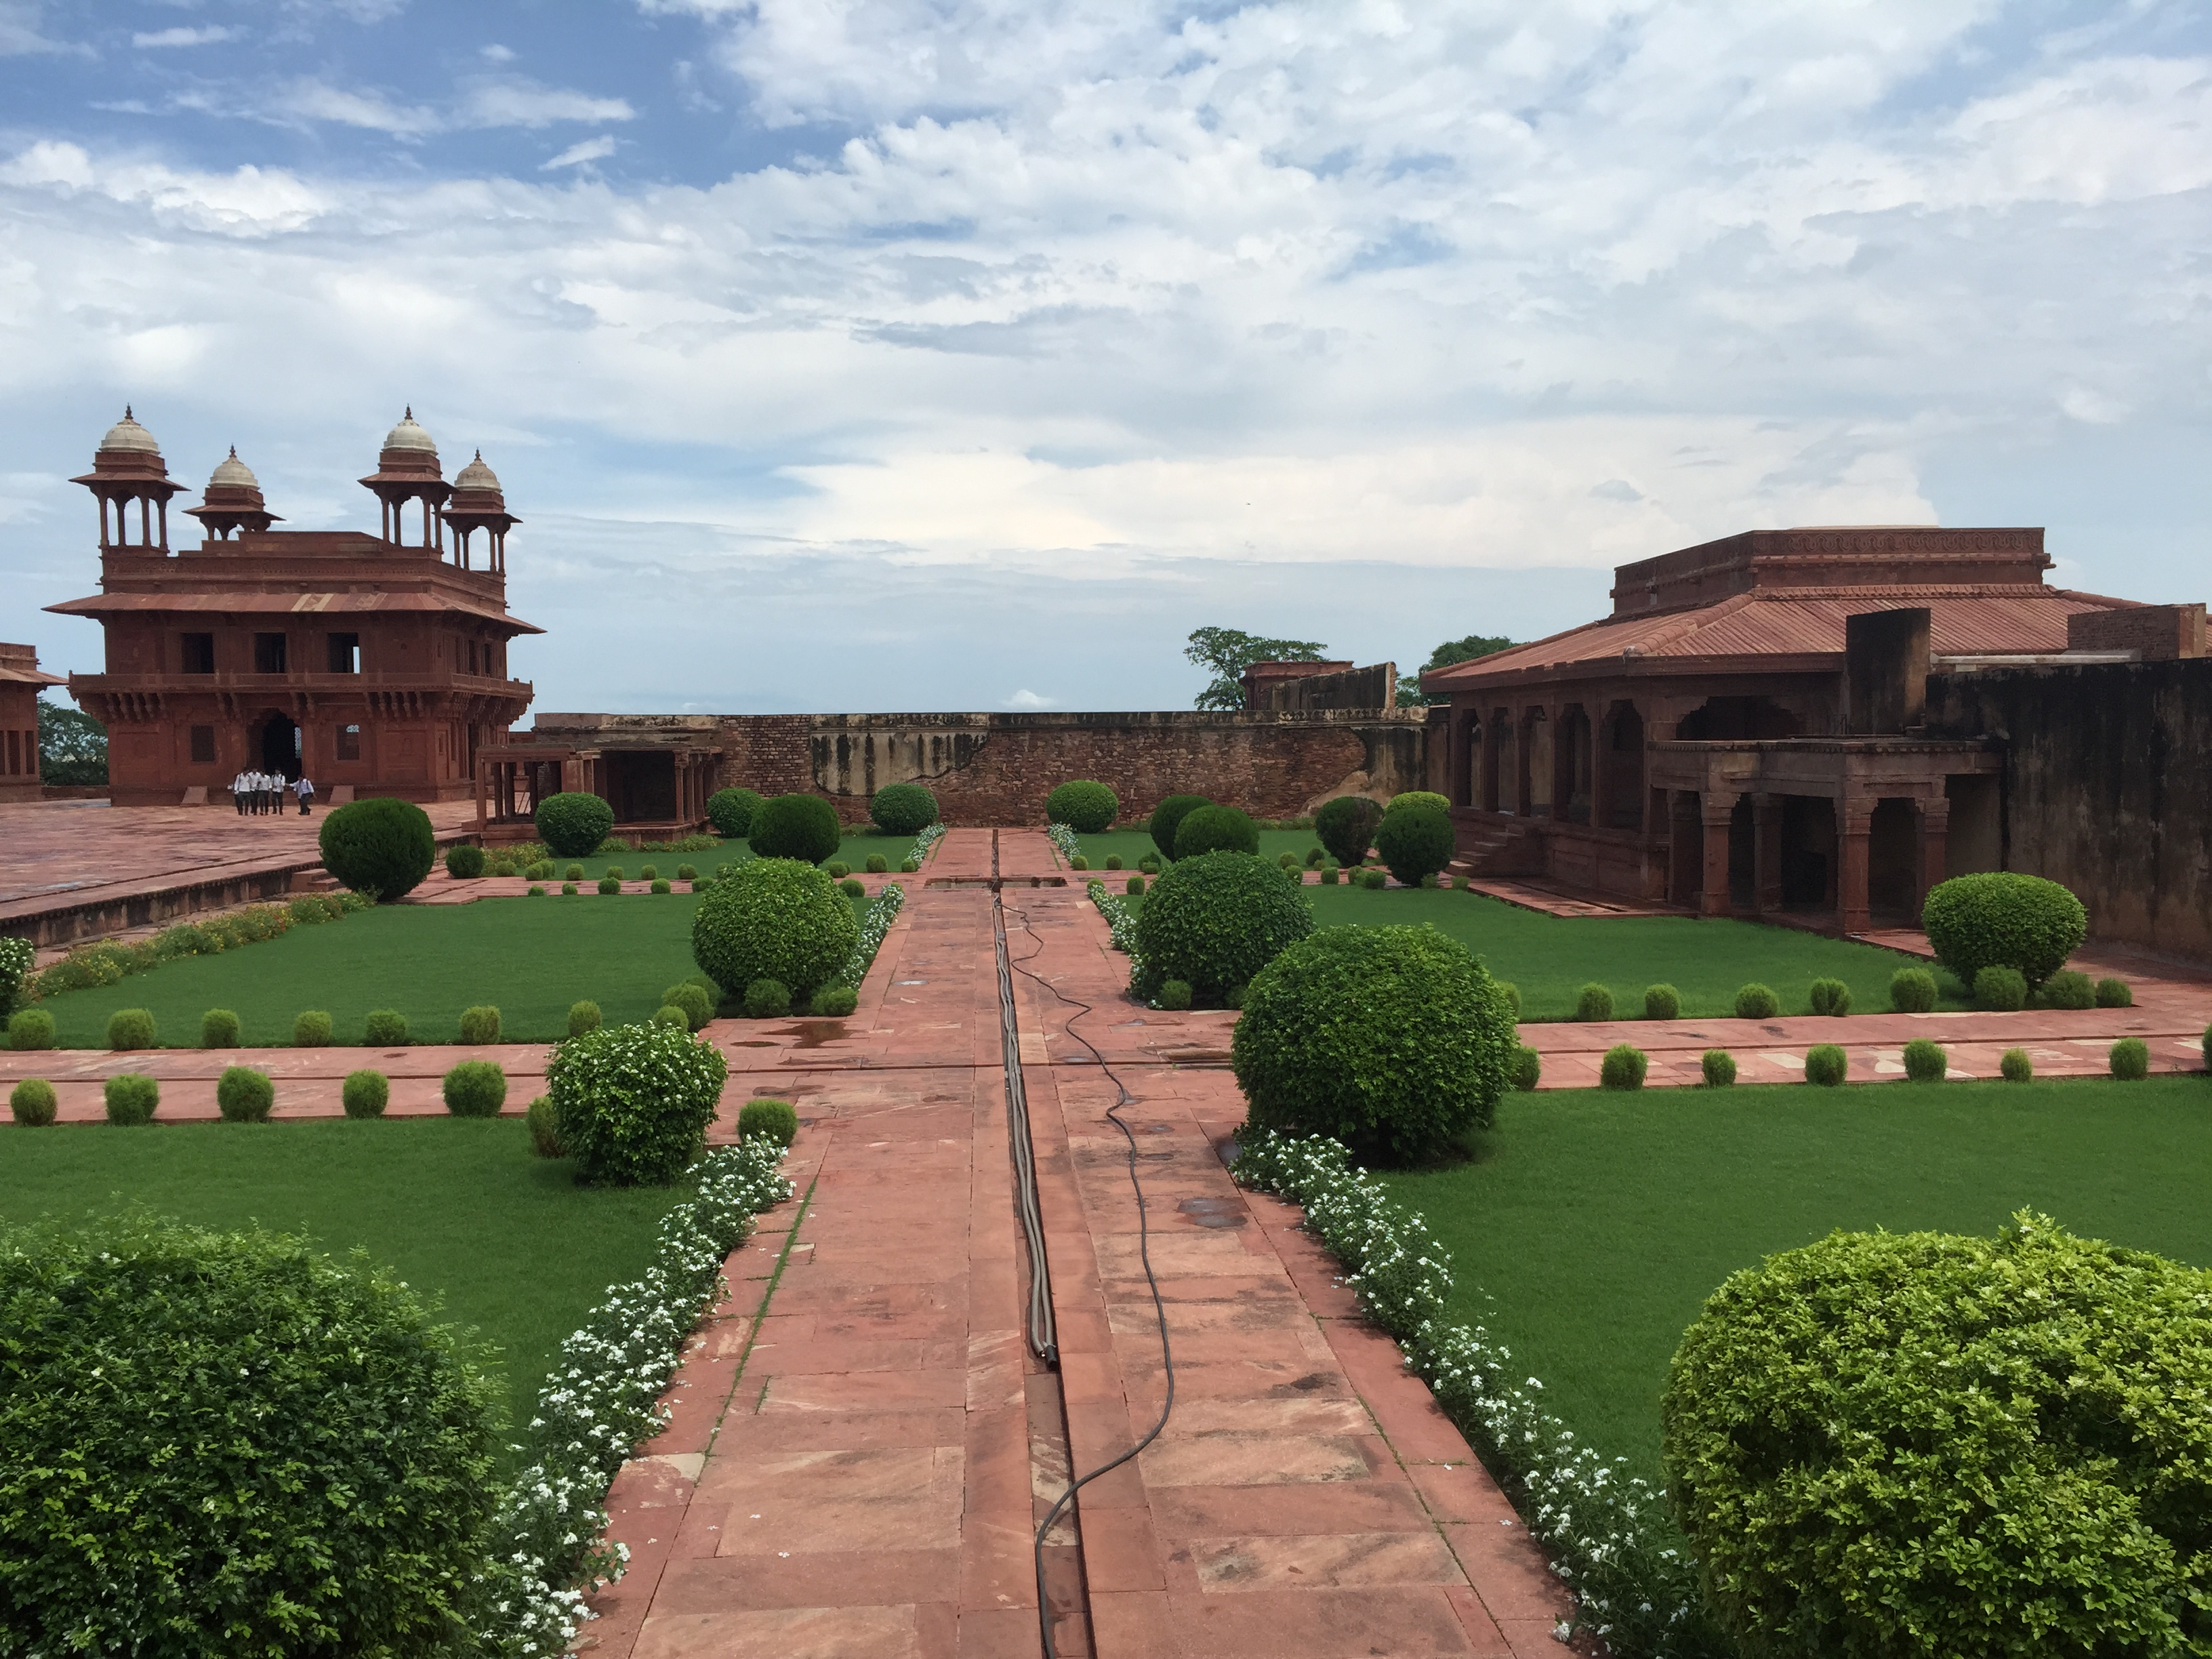 Courtyards of Fatehpur Sikri